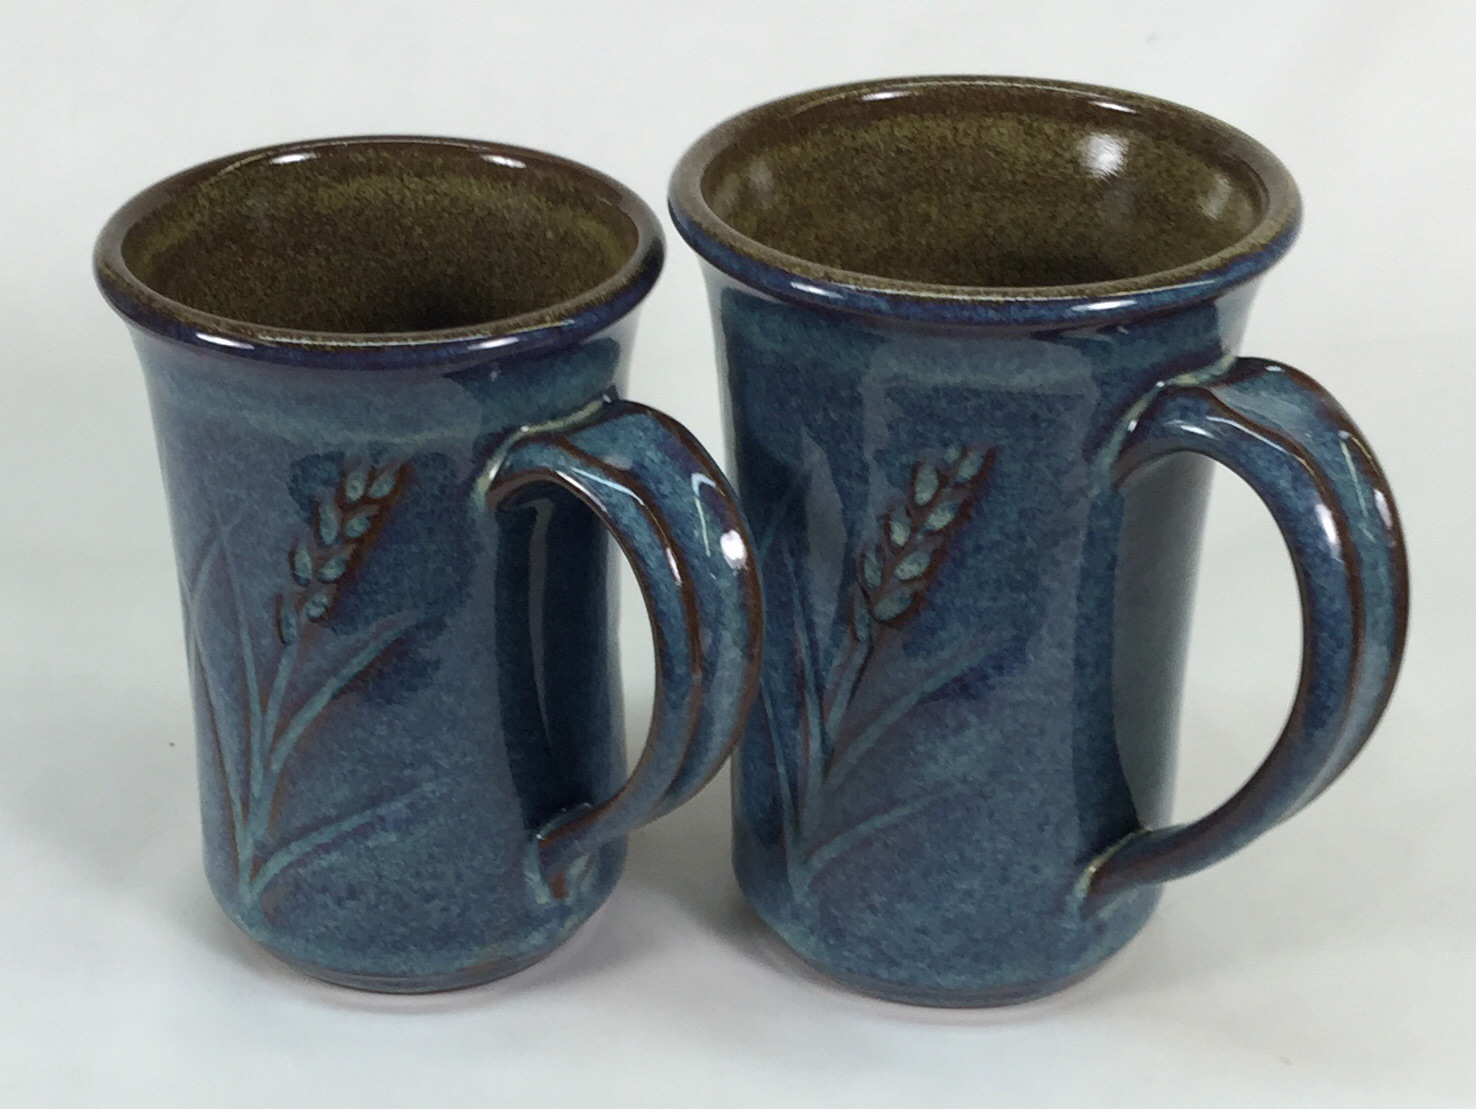 M390 mugs with Alberta Slip based glazes by Tony Hansen